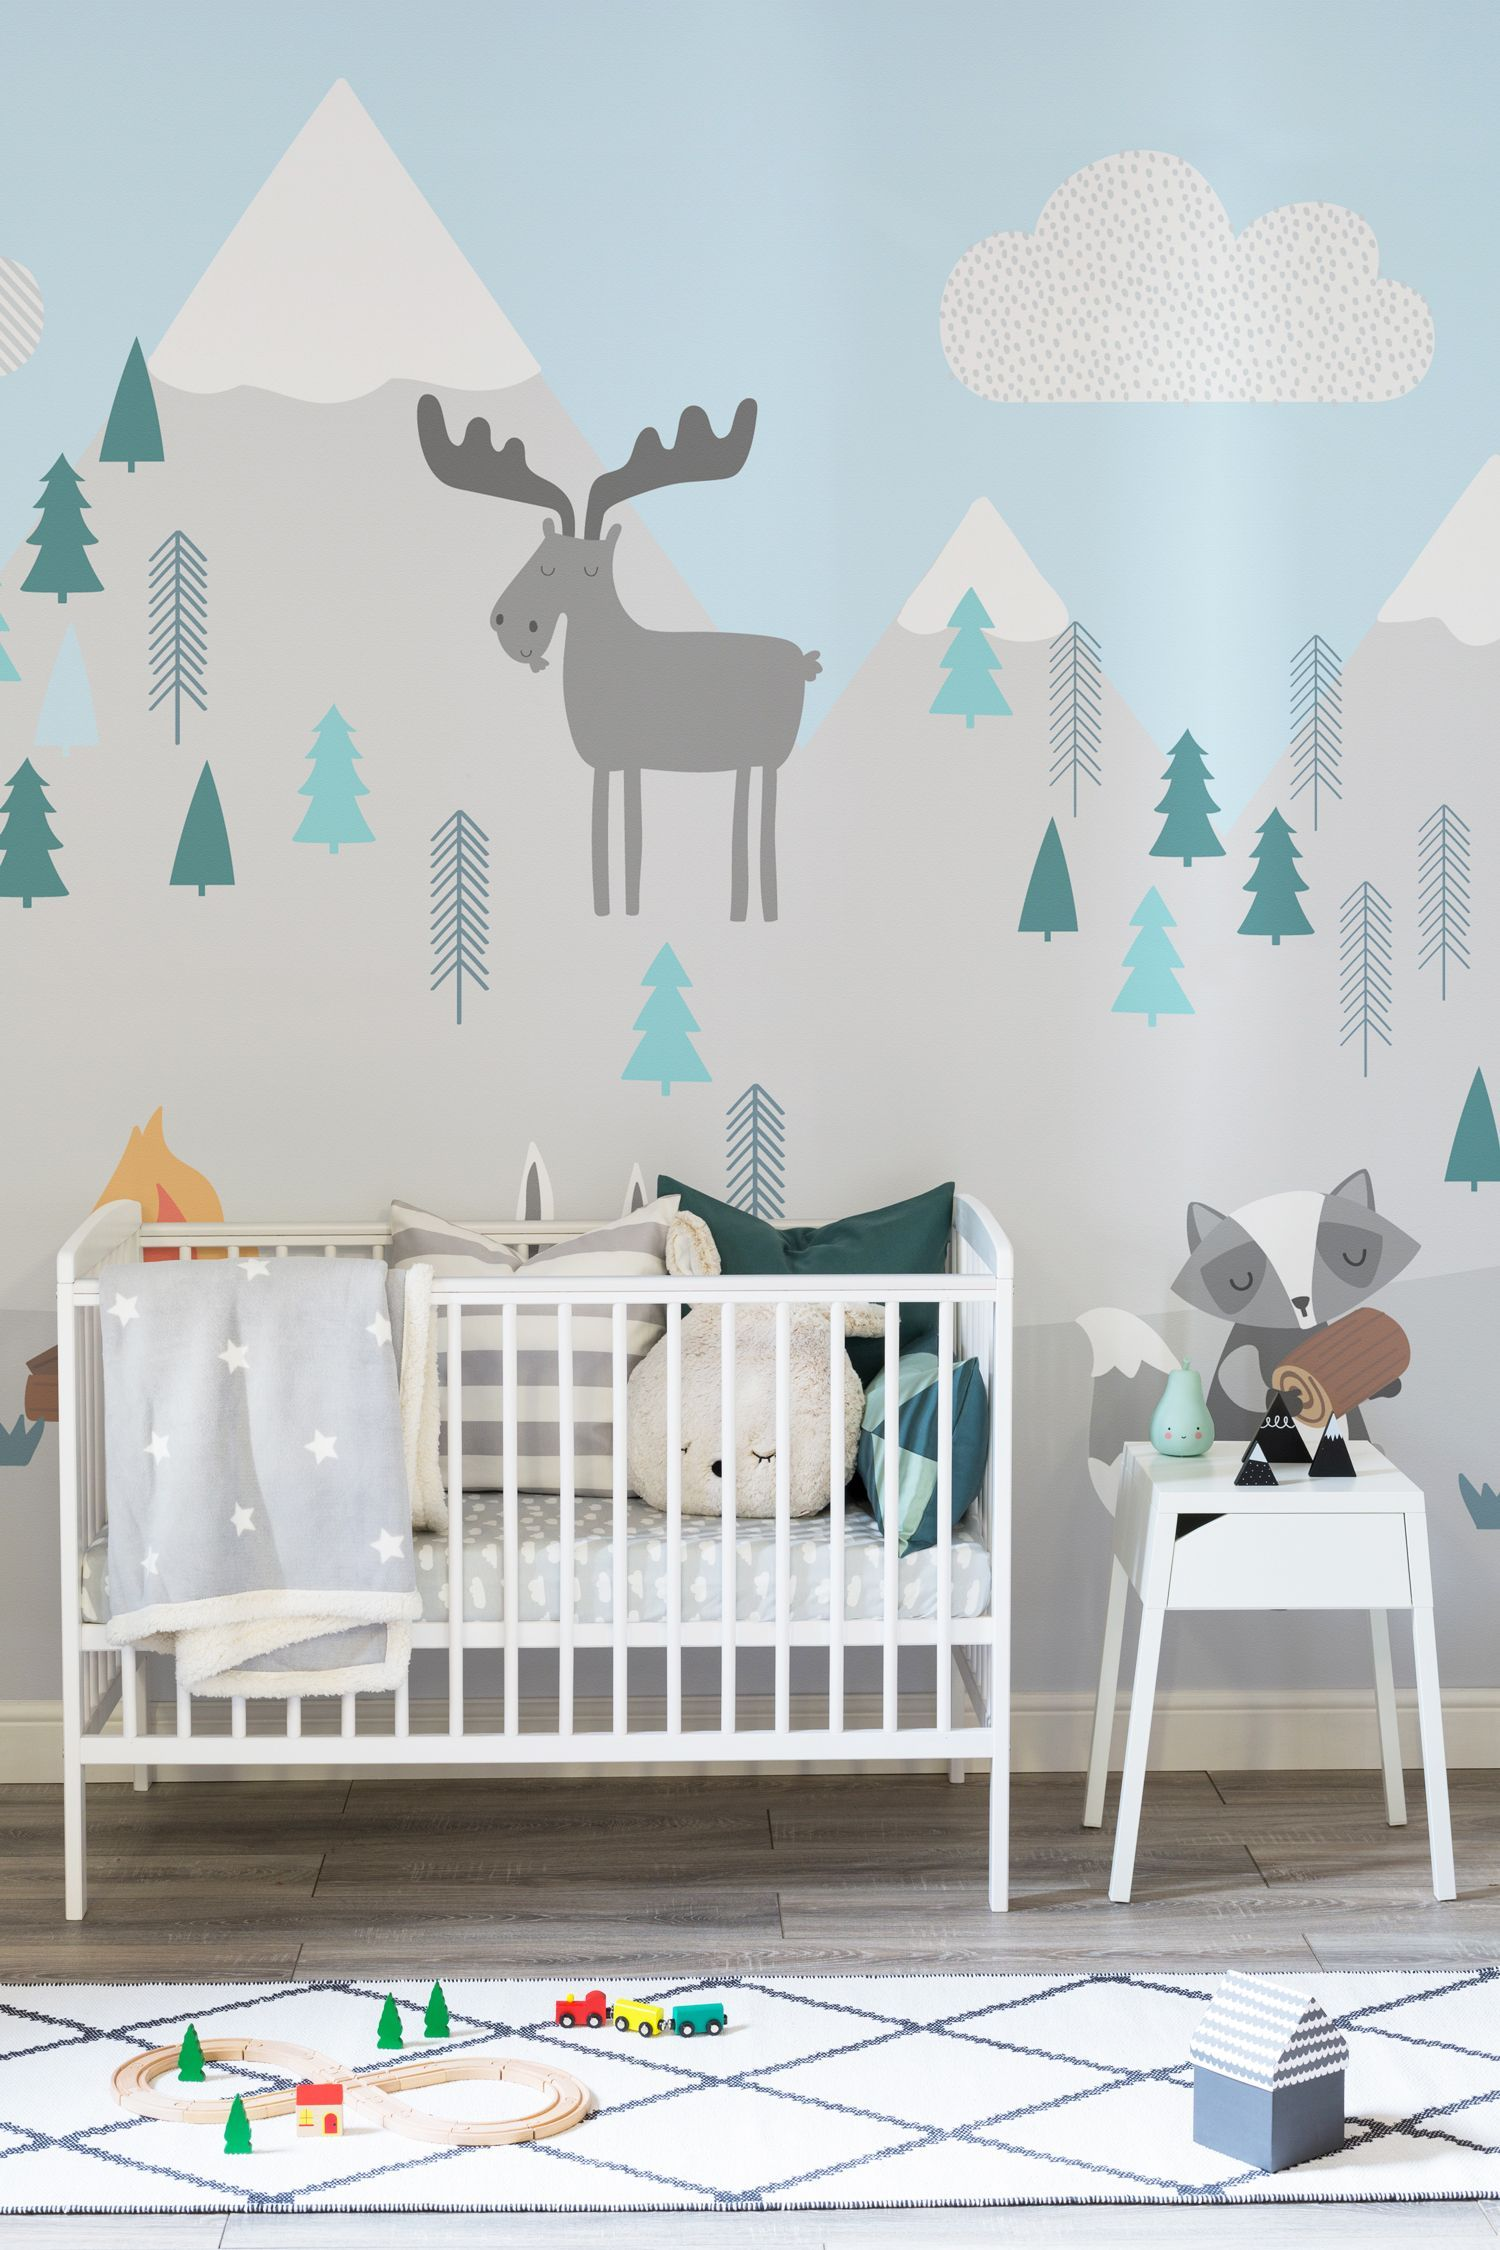 Transform your kid's bedrooms with one of these mountain